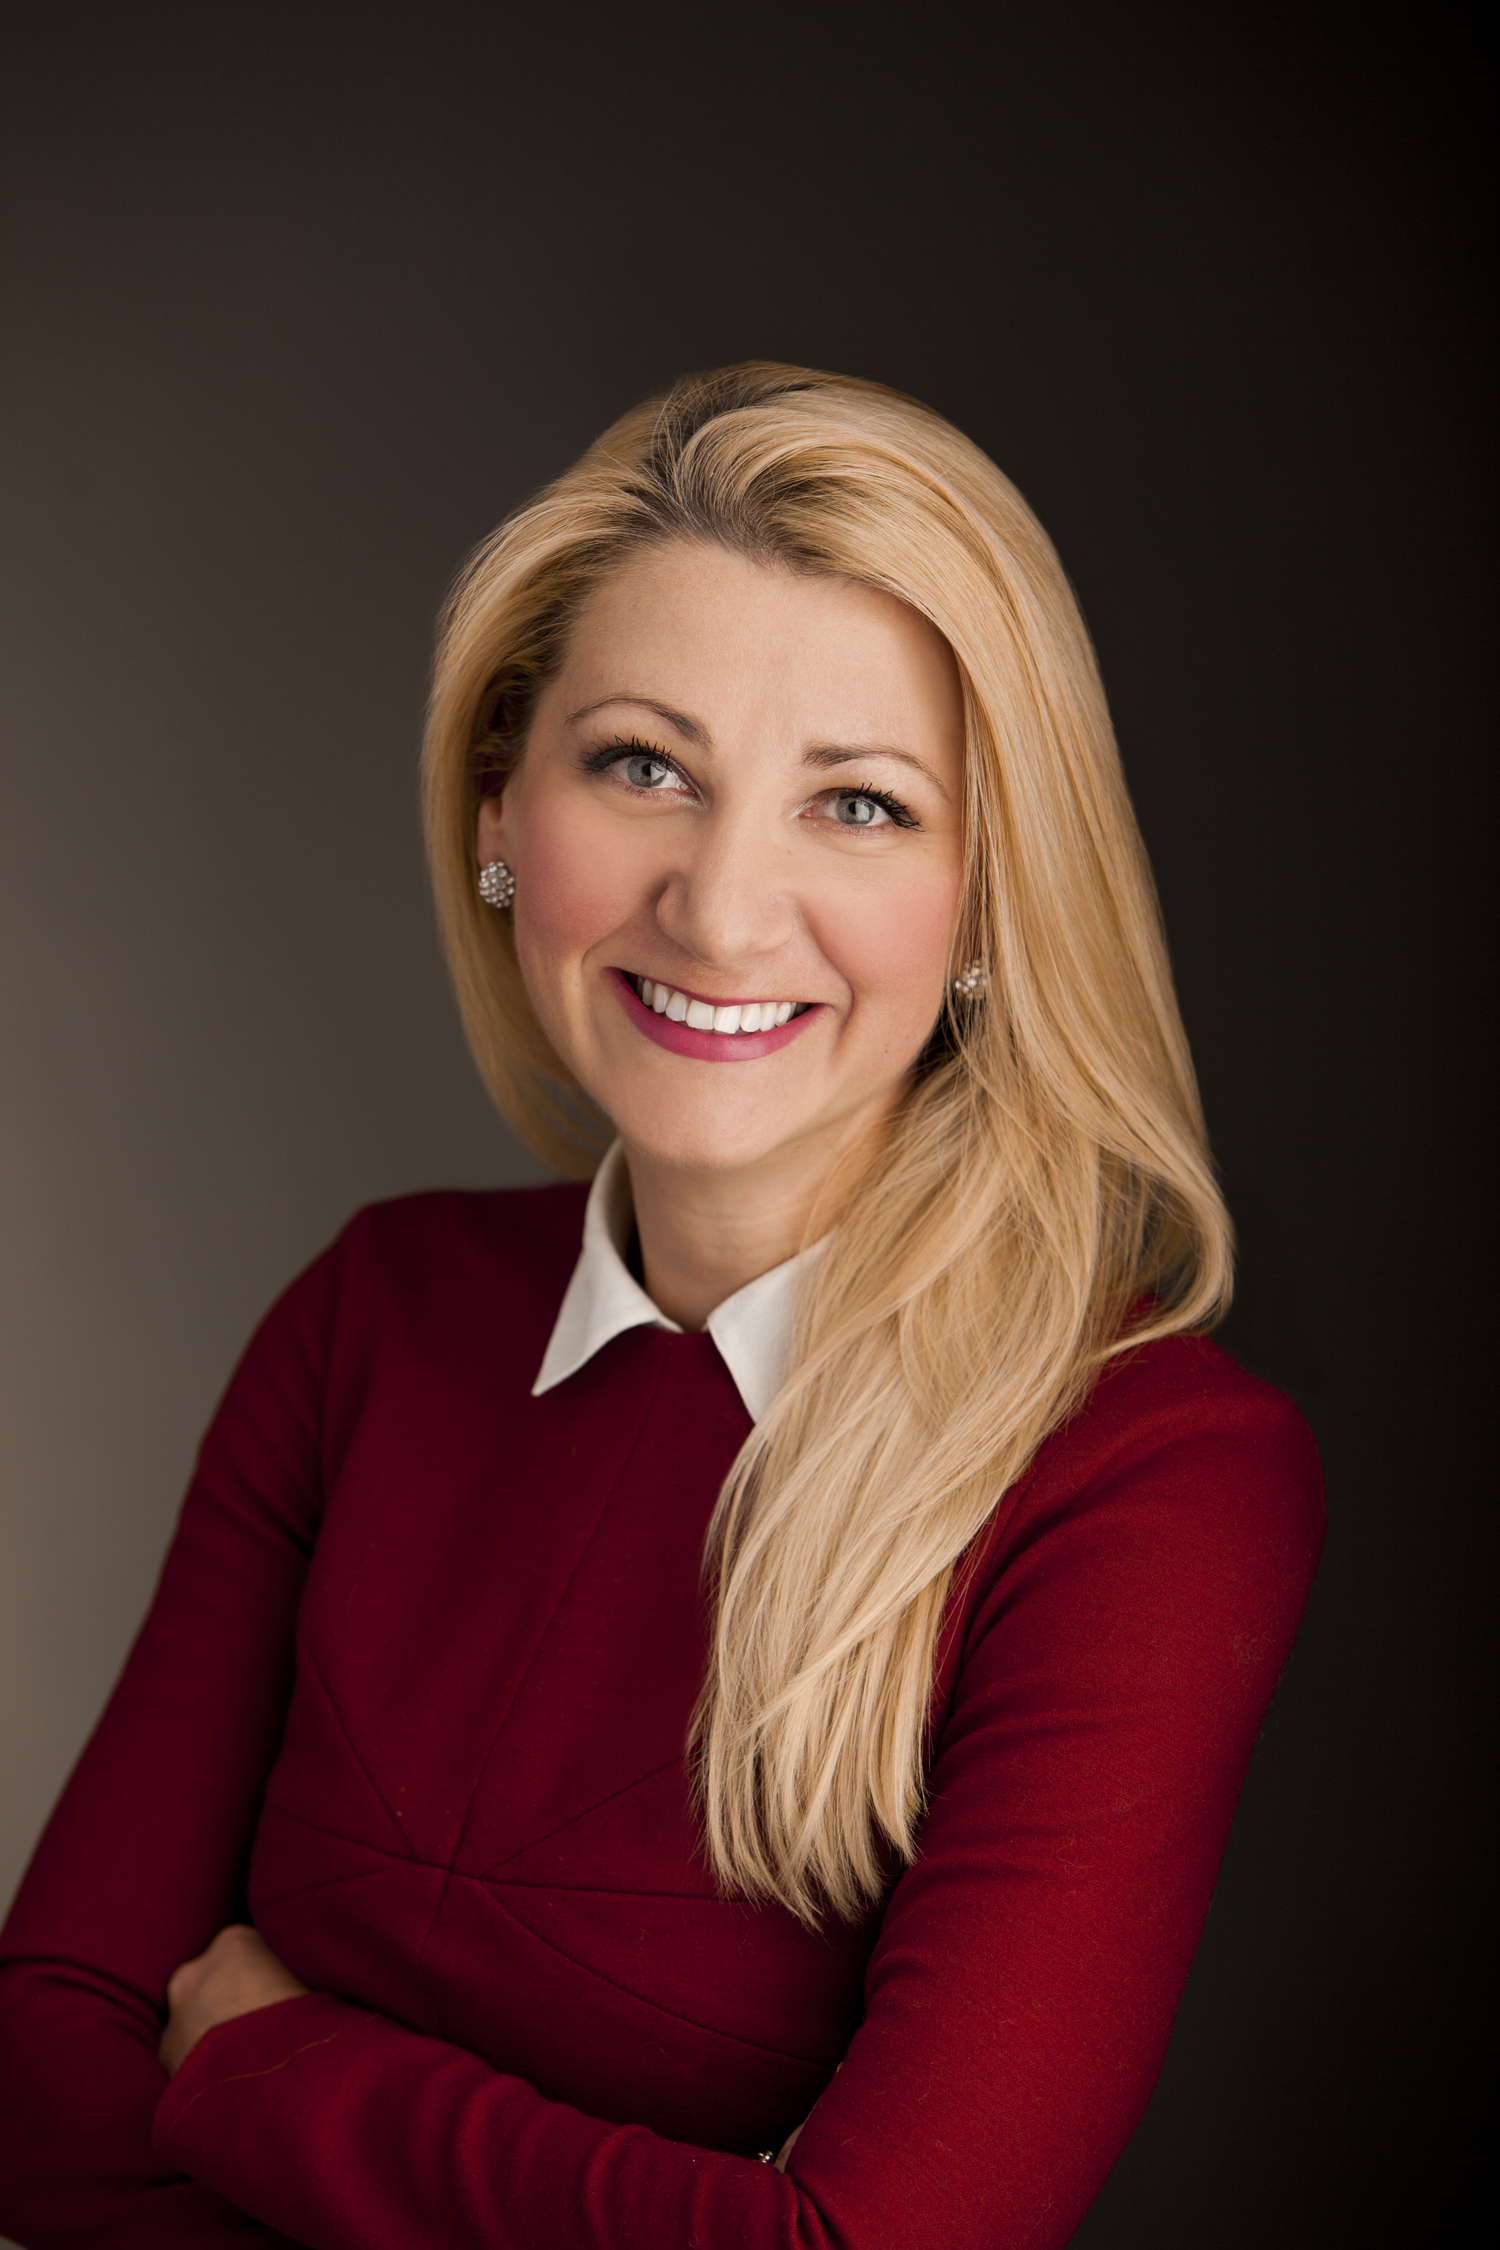 Libby Archell rejoins Alcoa as Vice President, Corporate Affairs (Photo: Business Wire)